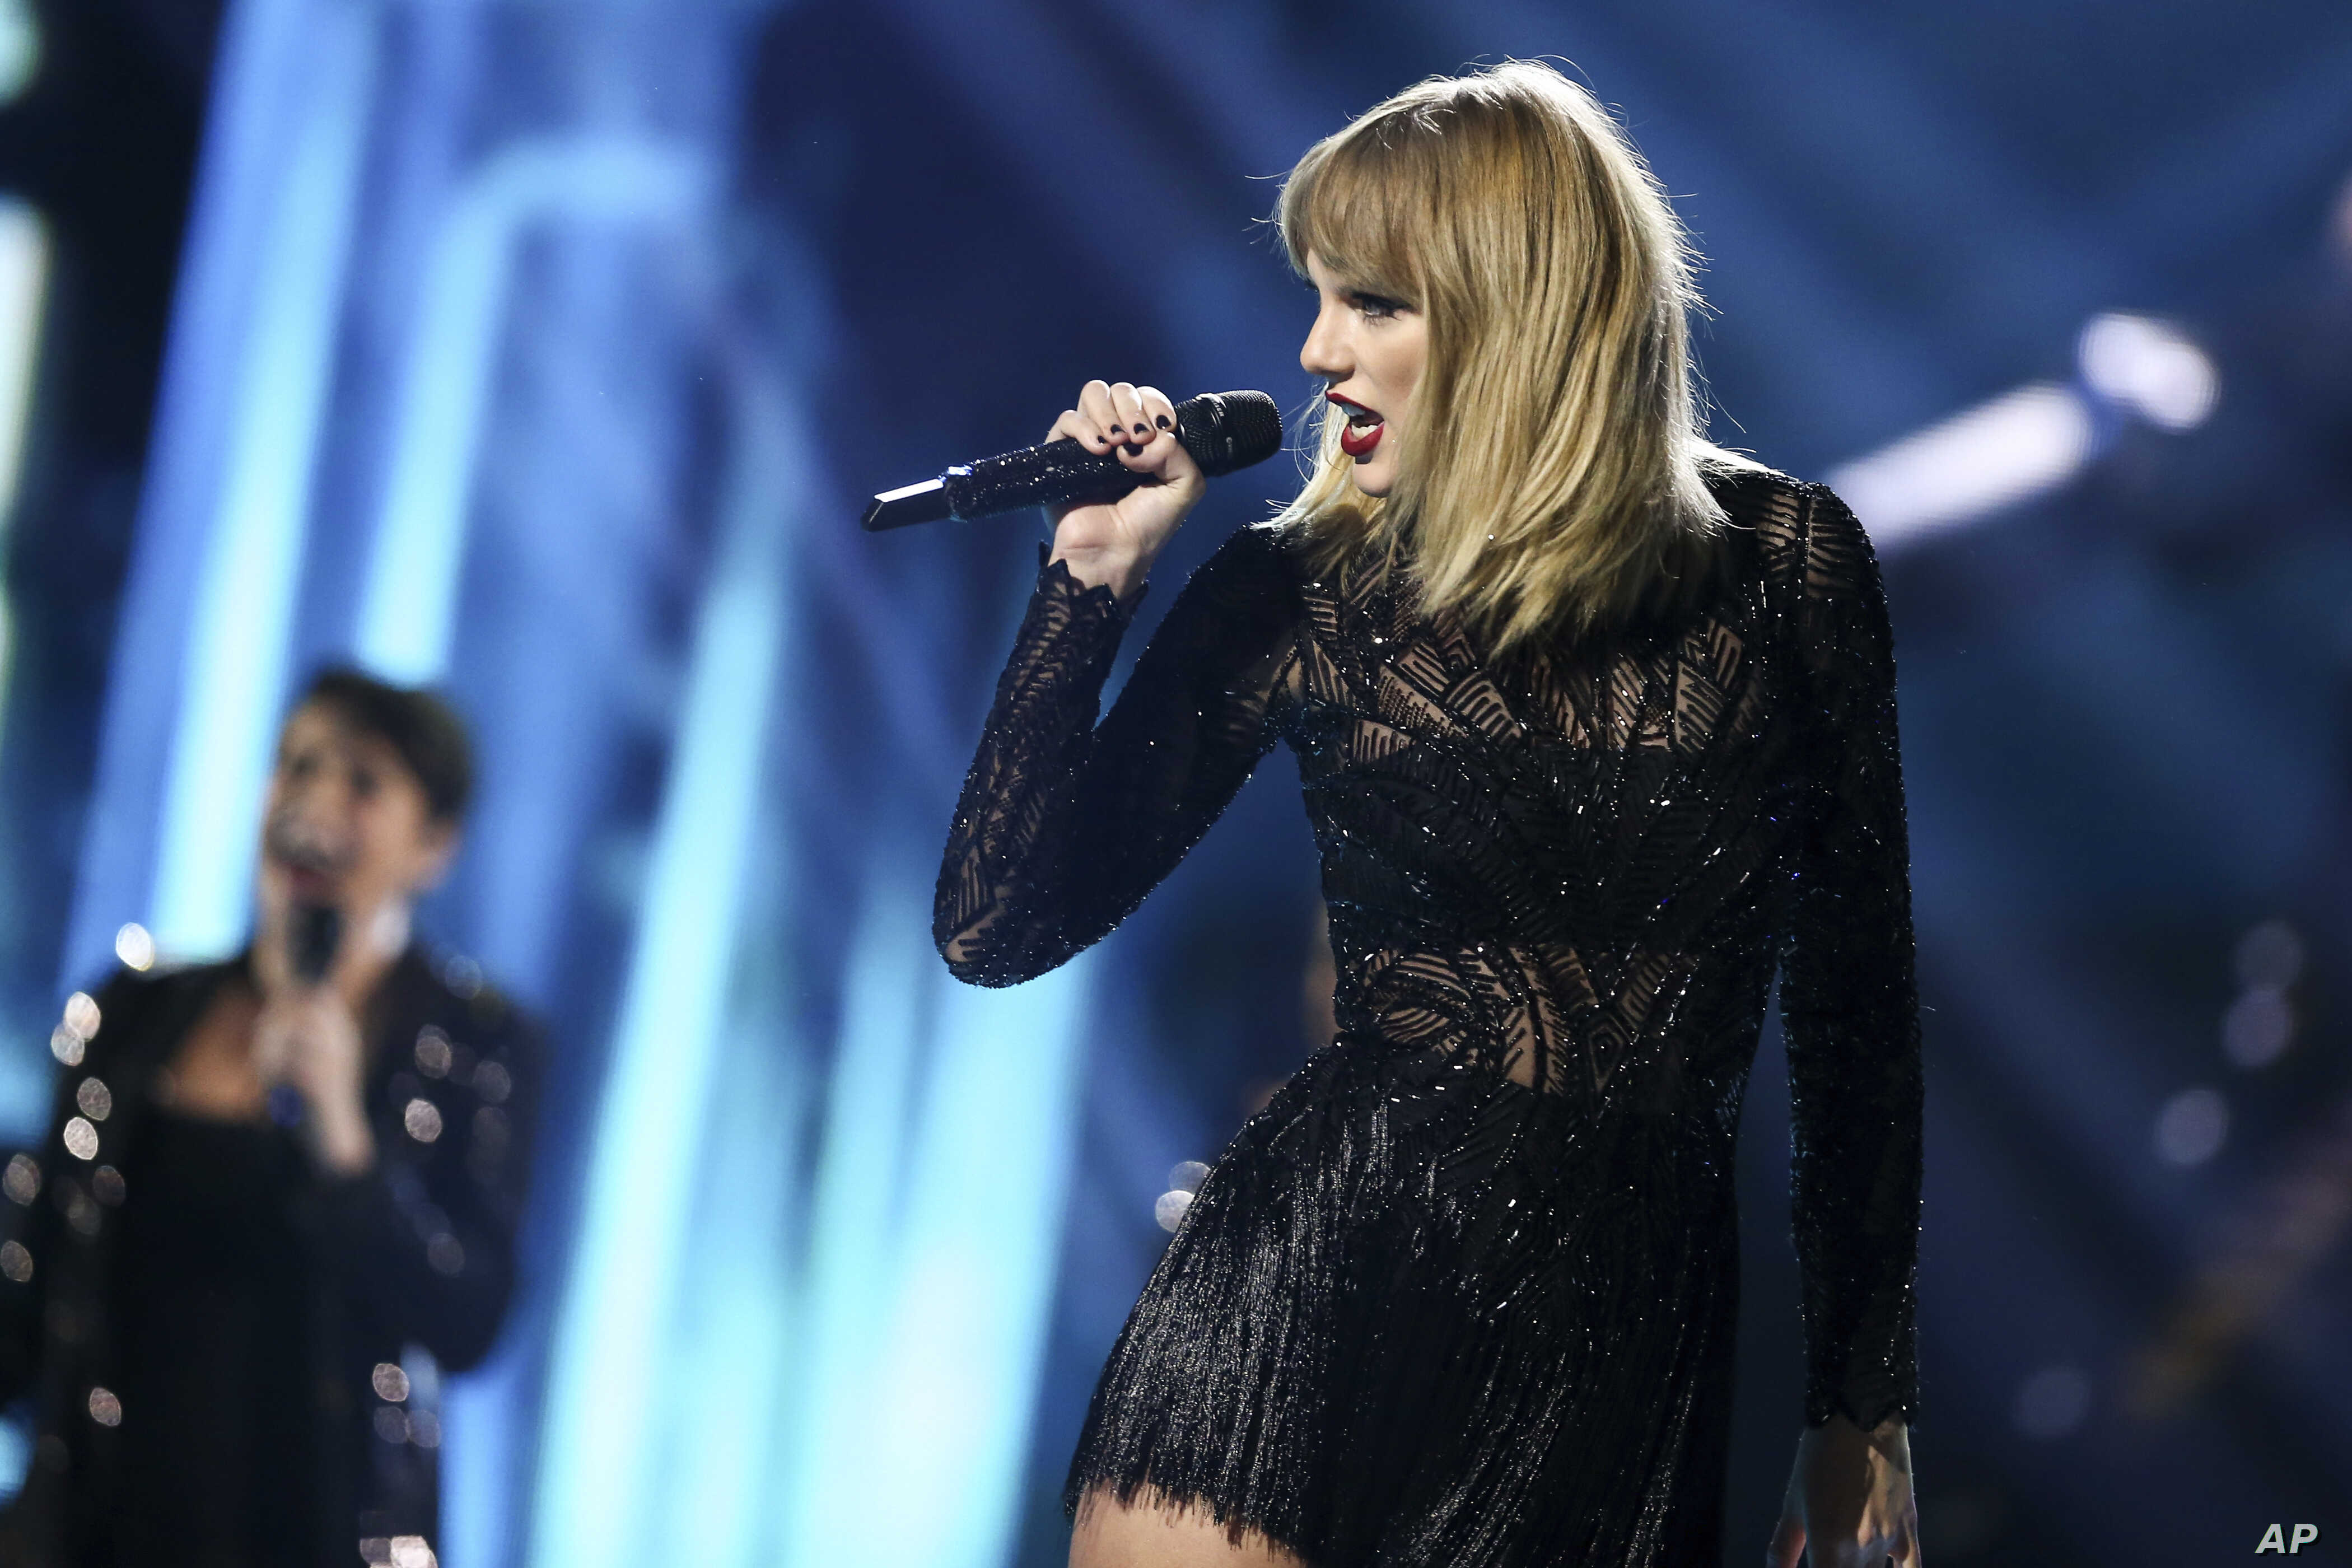 Taylor Swift S Reputation Sales Soar But Adele Keeps Her Crown Voice Of America English